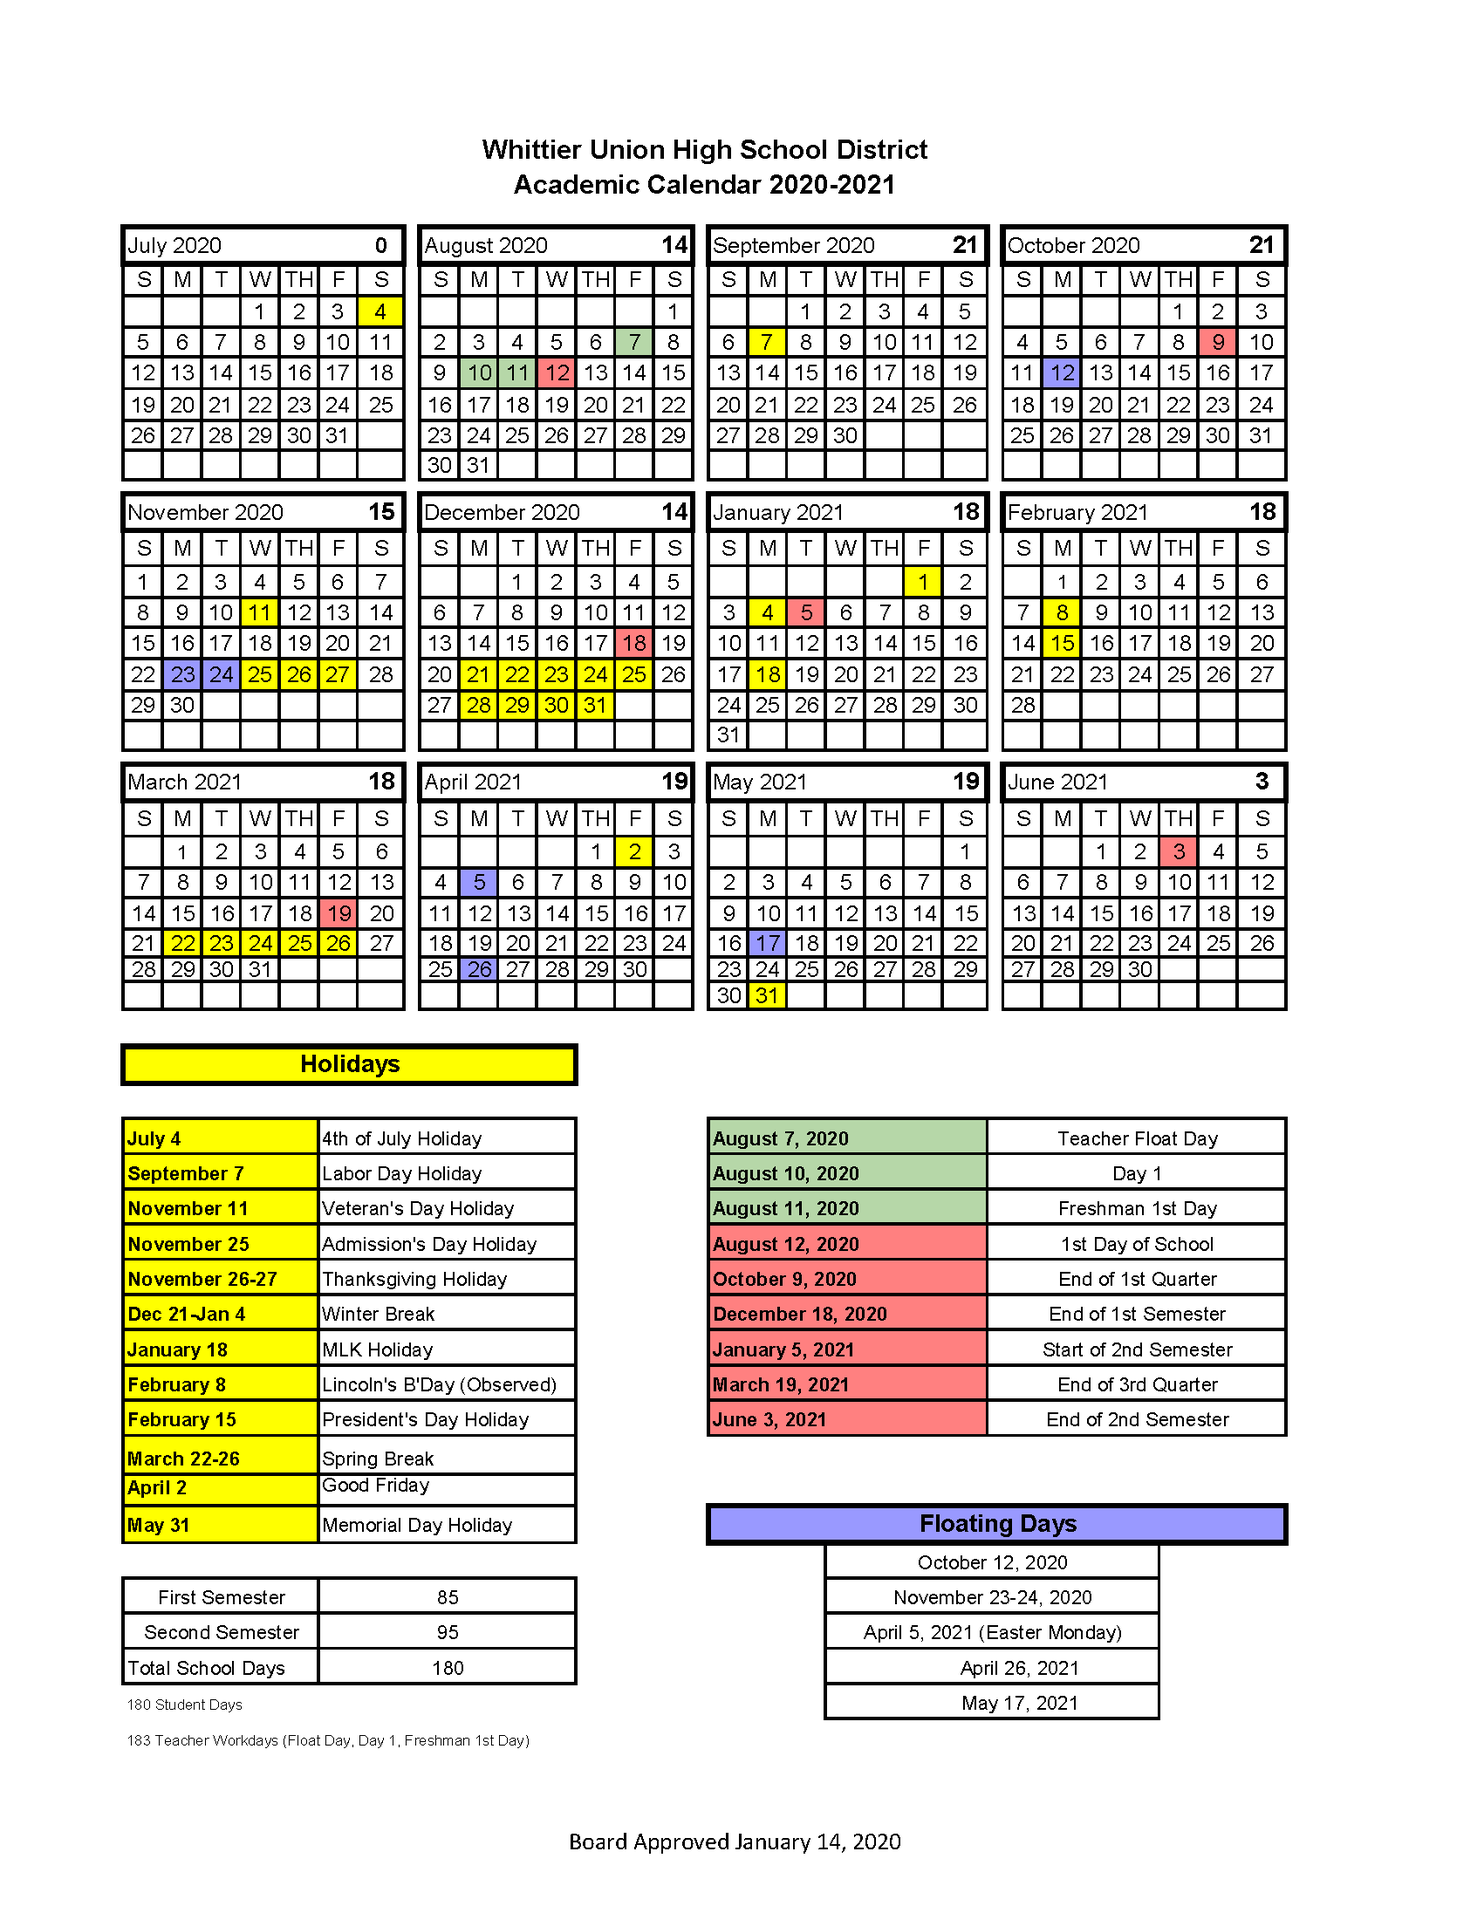 Wuhsd Academic Calendars – District Information – Whittier pertaining to West Orange School District Printale Academic Schoool Schedule